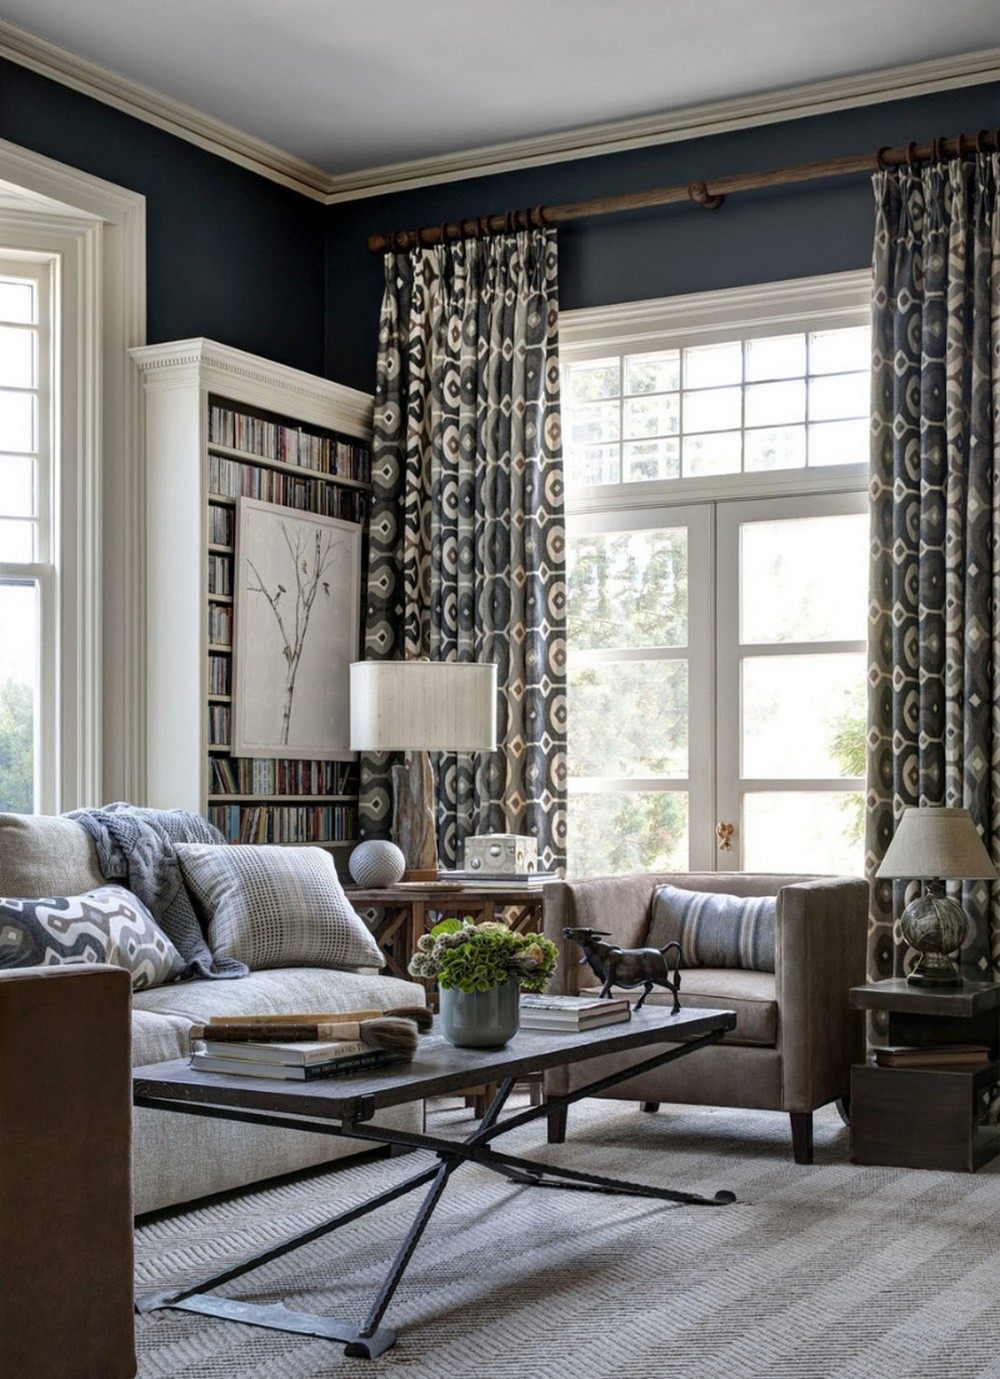 Elle Decor Shows You How To Decorate With The Best Design Trends elle decor Elle Decor Shows You How To Decorate With The Best Design Trends Elle Decor Shows You How To Decorate With The Best Design Trends 7